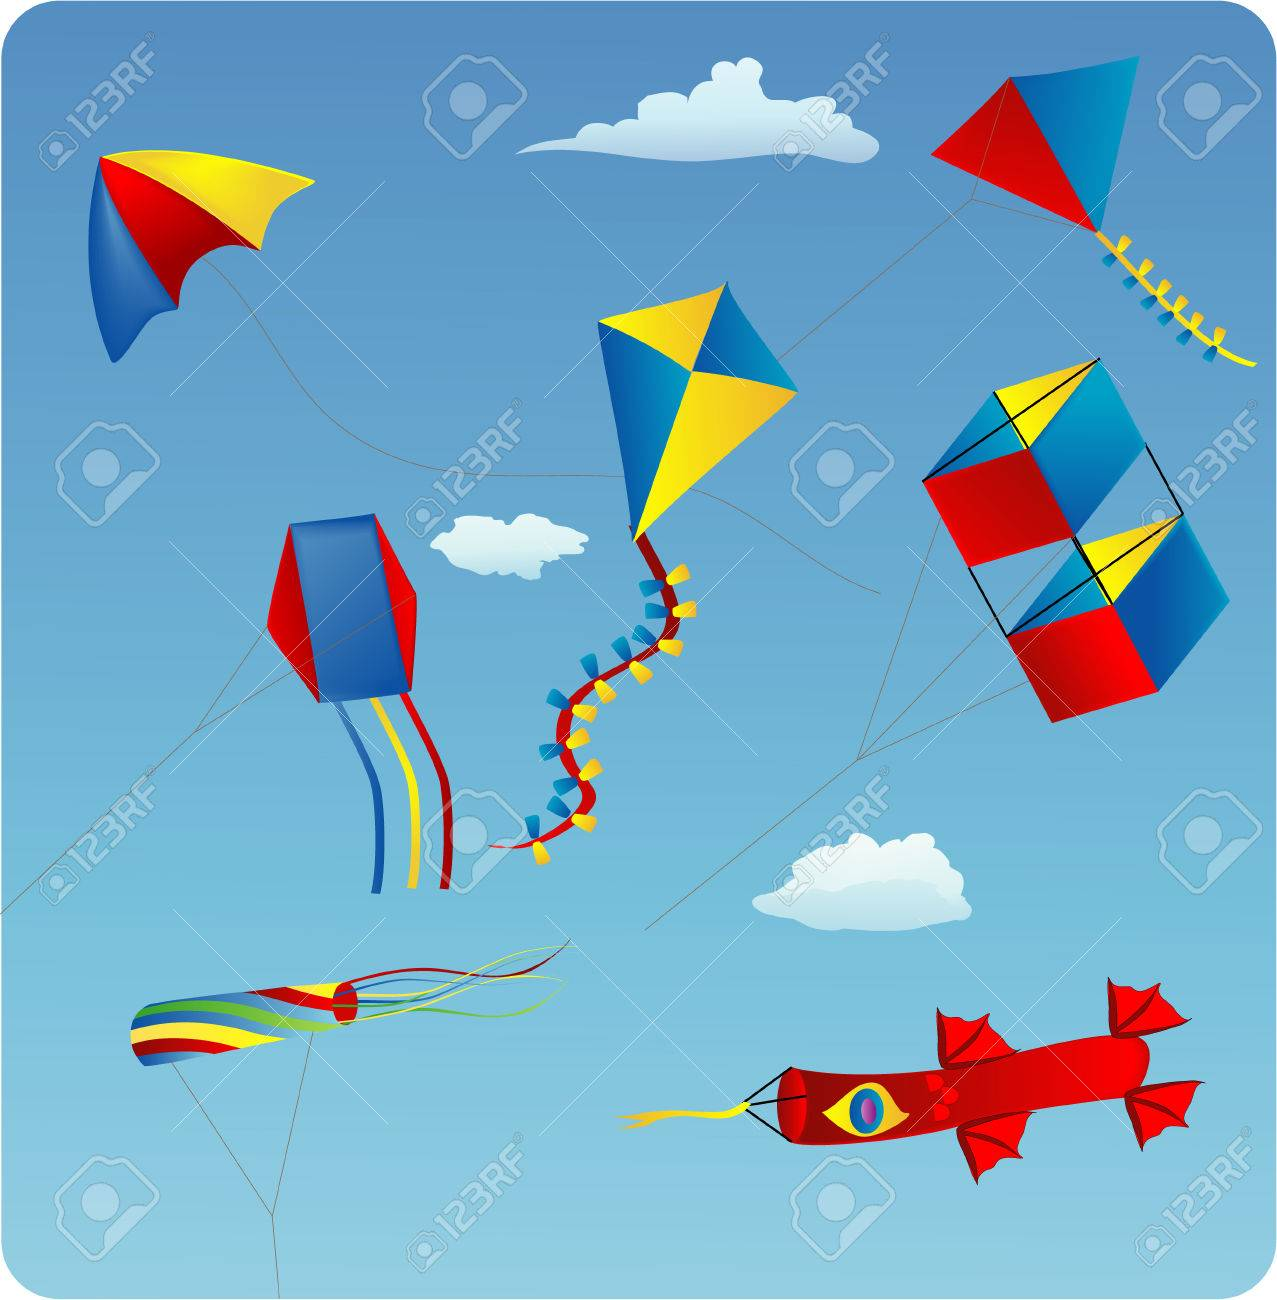 ctor-illustration-of-various-kites-in-the-blue-sky.jpg